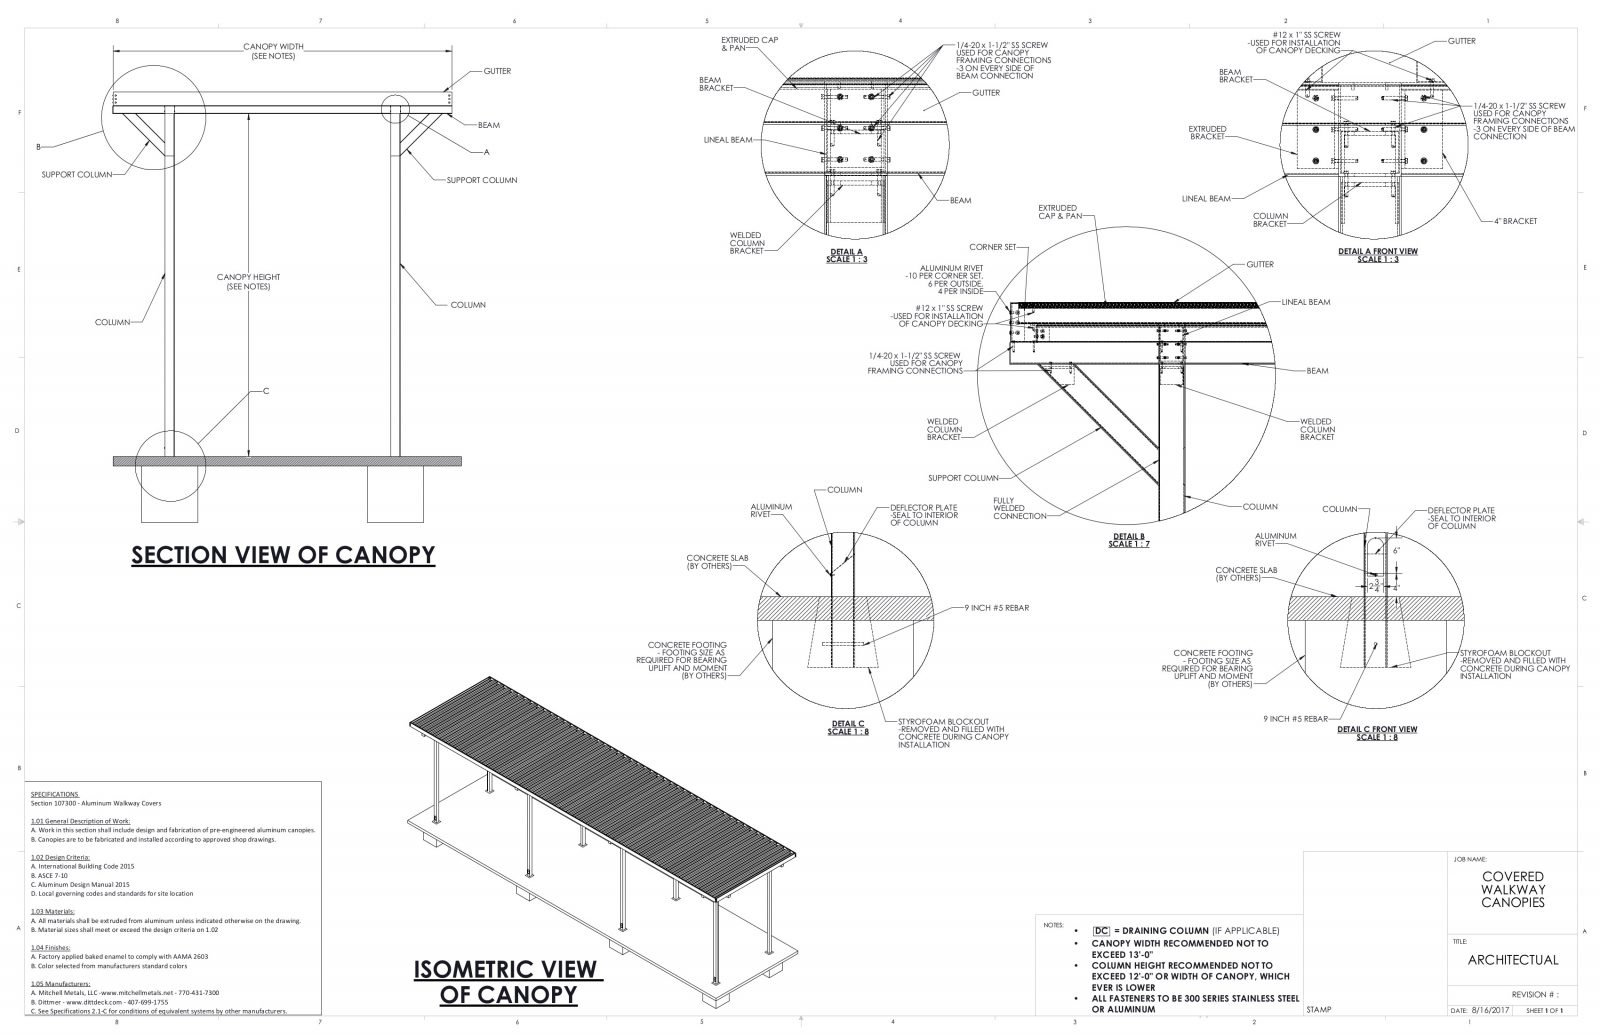 Covered Walkway Canopy Drawings Specs For Canopies